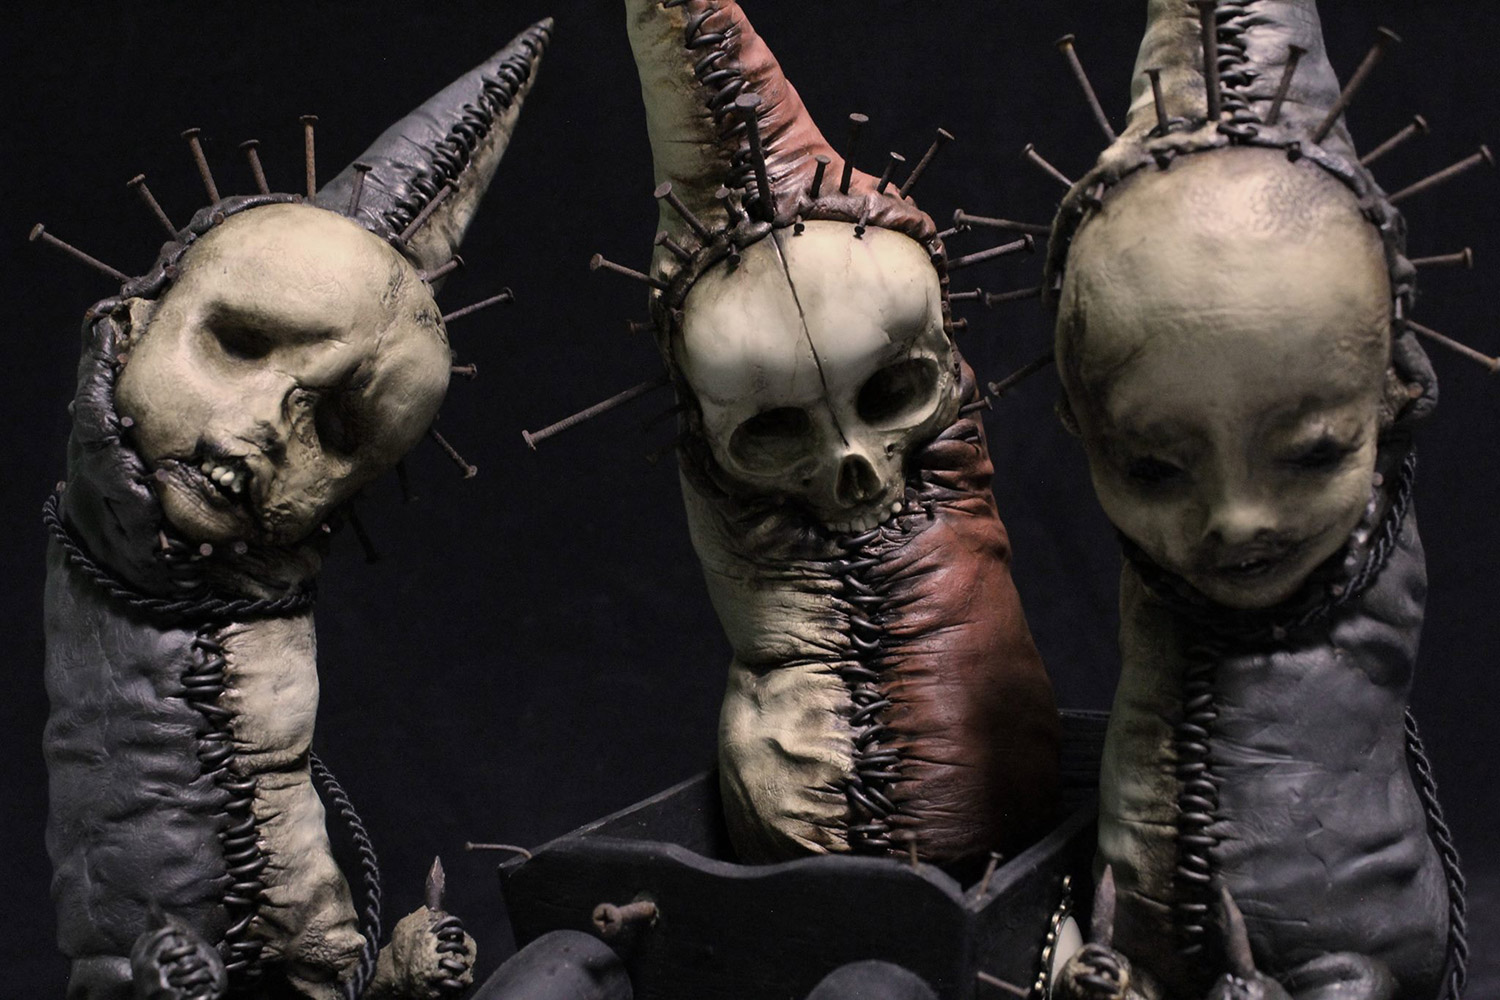 Morbid Creations - Emil Melmoth